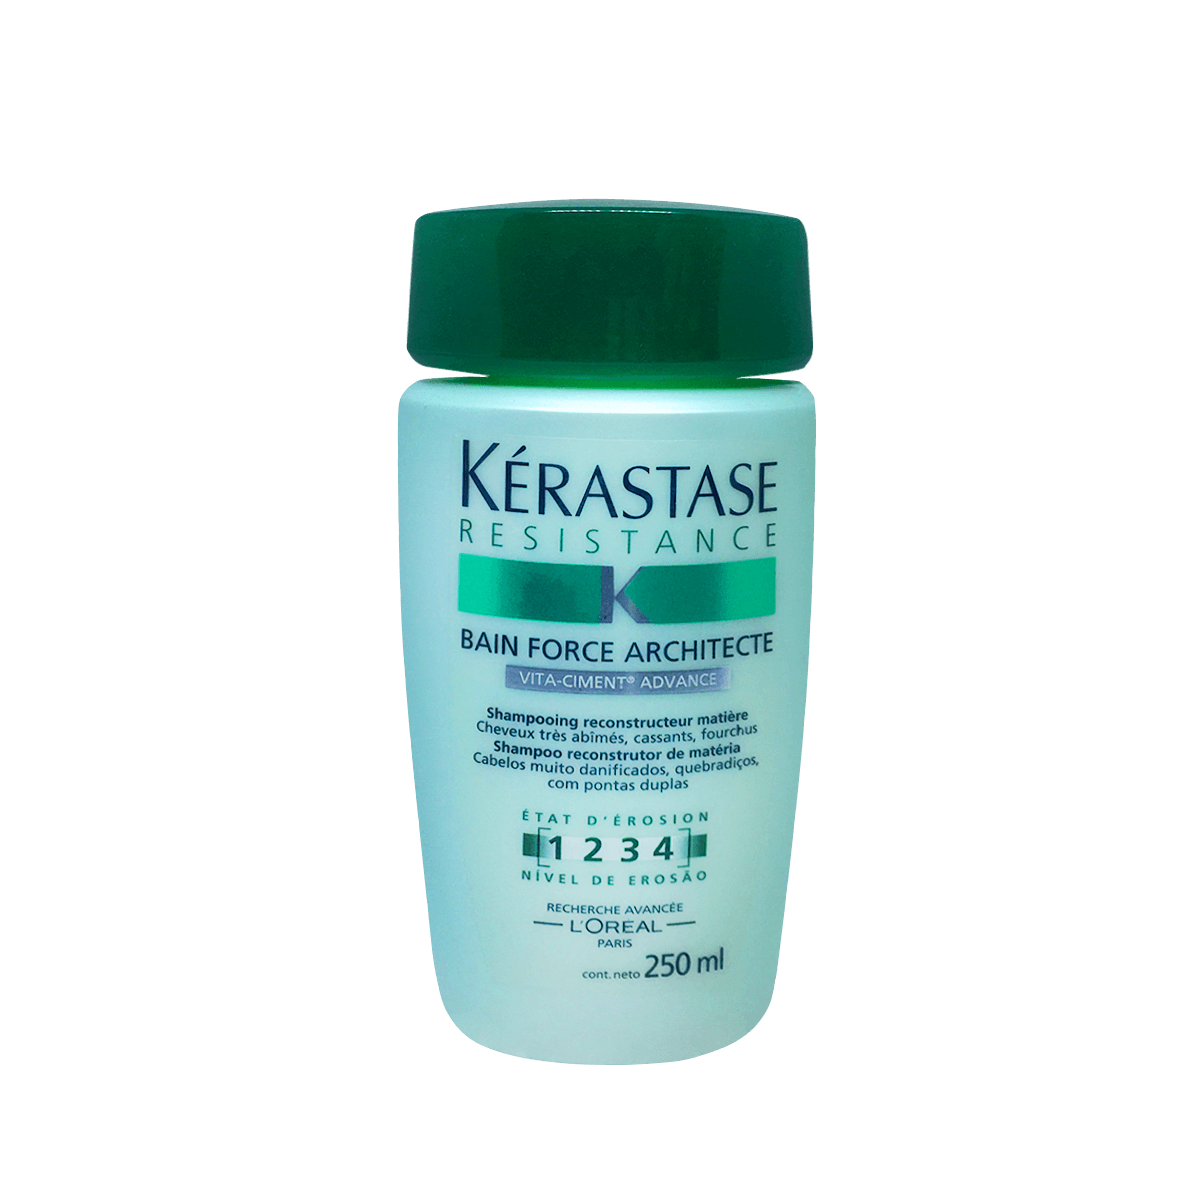 Kerastase Shampoo Resistance Bain de Force Architecte - 250ml